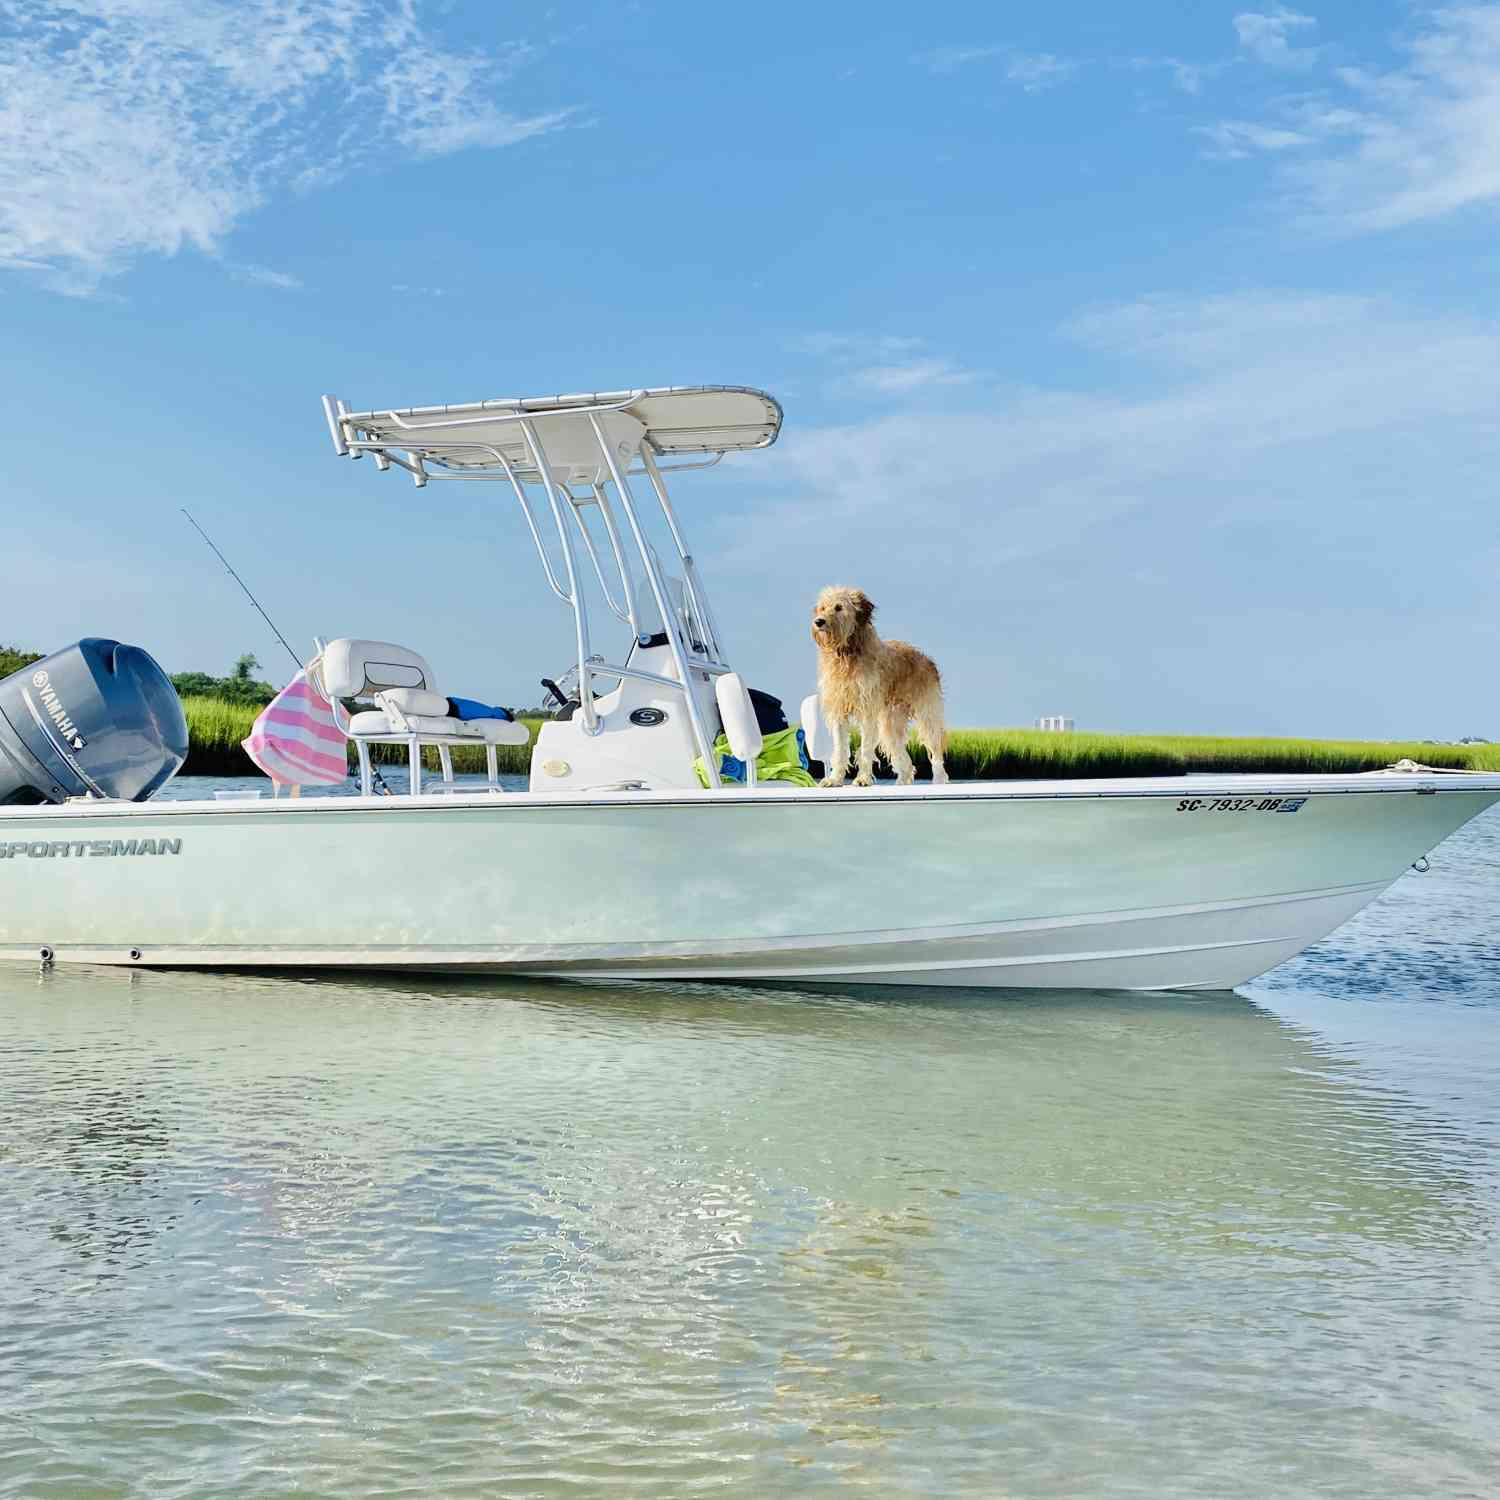 Title: Water dog - On board their Sportsman Masters 207 Bay Boat - Location: Masonboro island Wilmington NC. Participating in the Photo Contest #SportsmanAugust2020